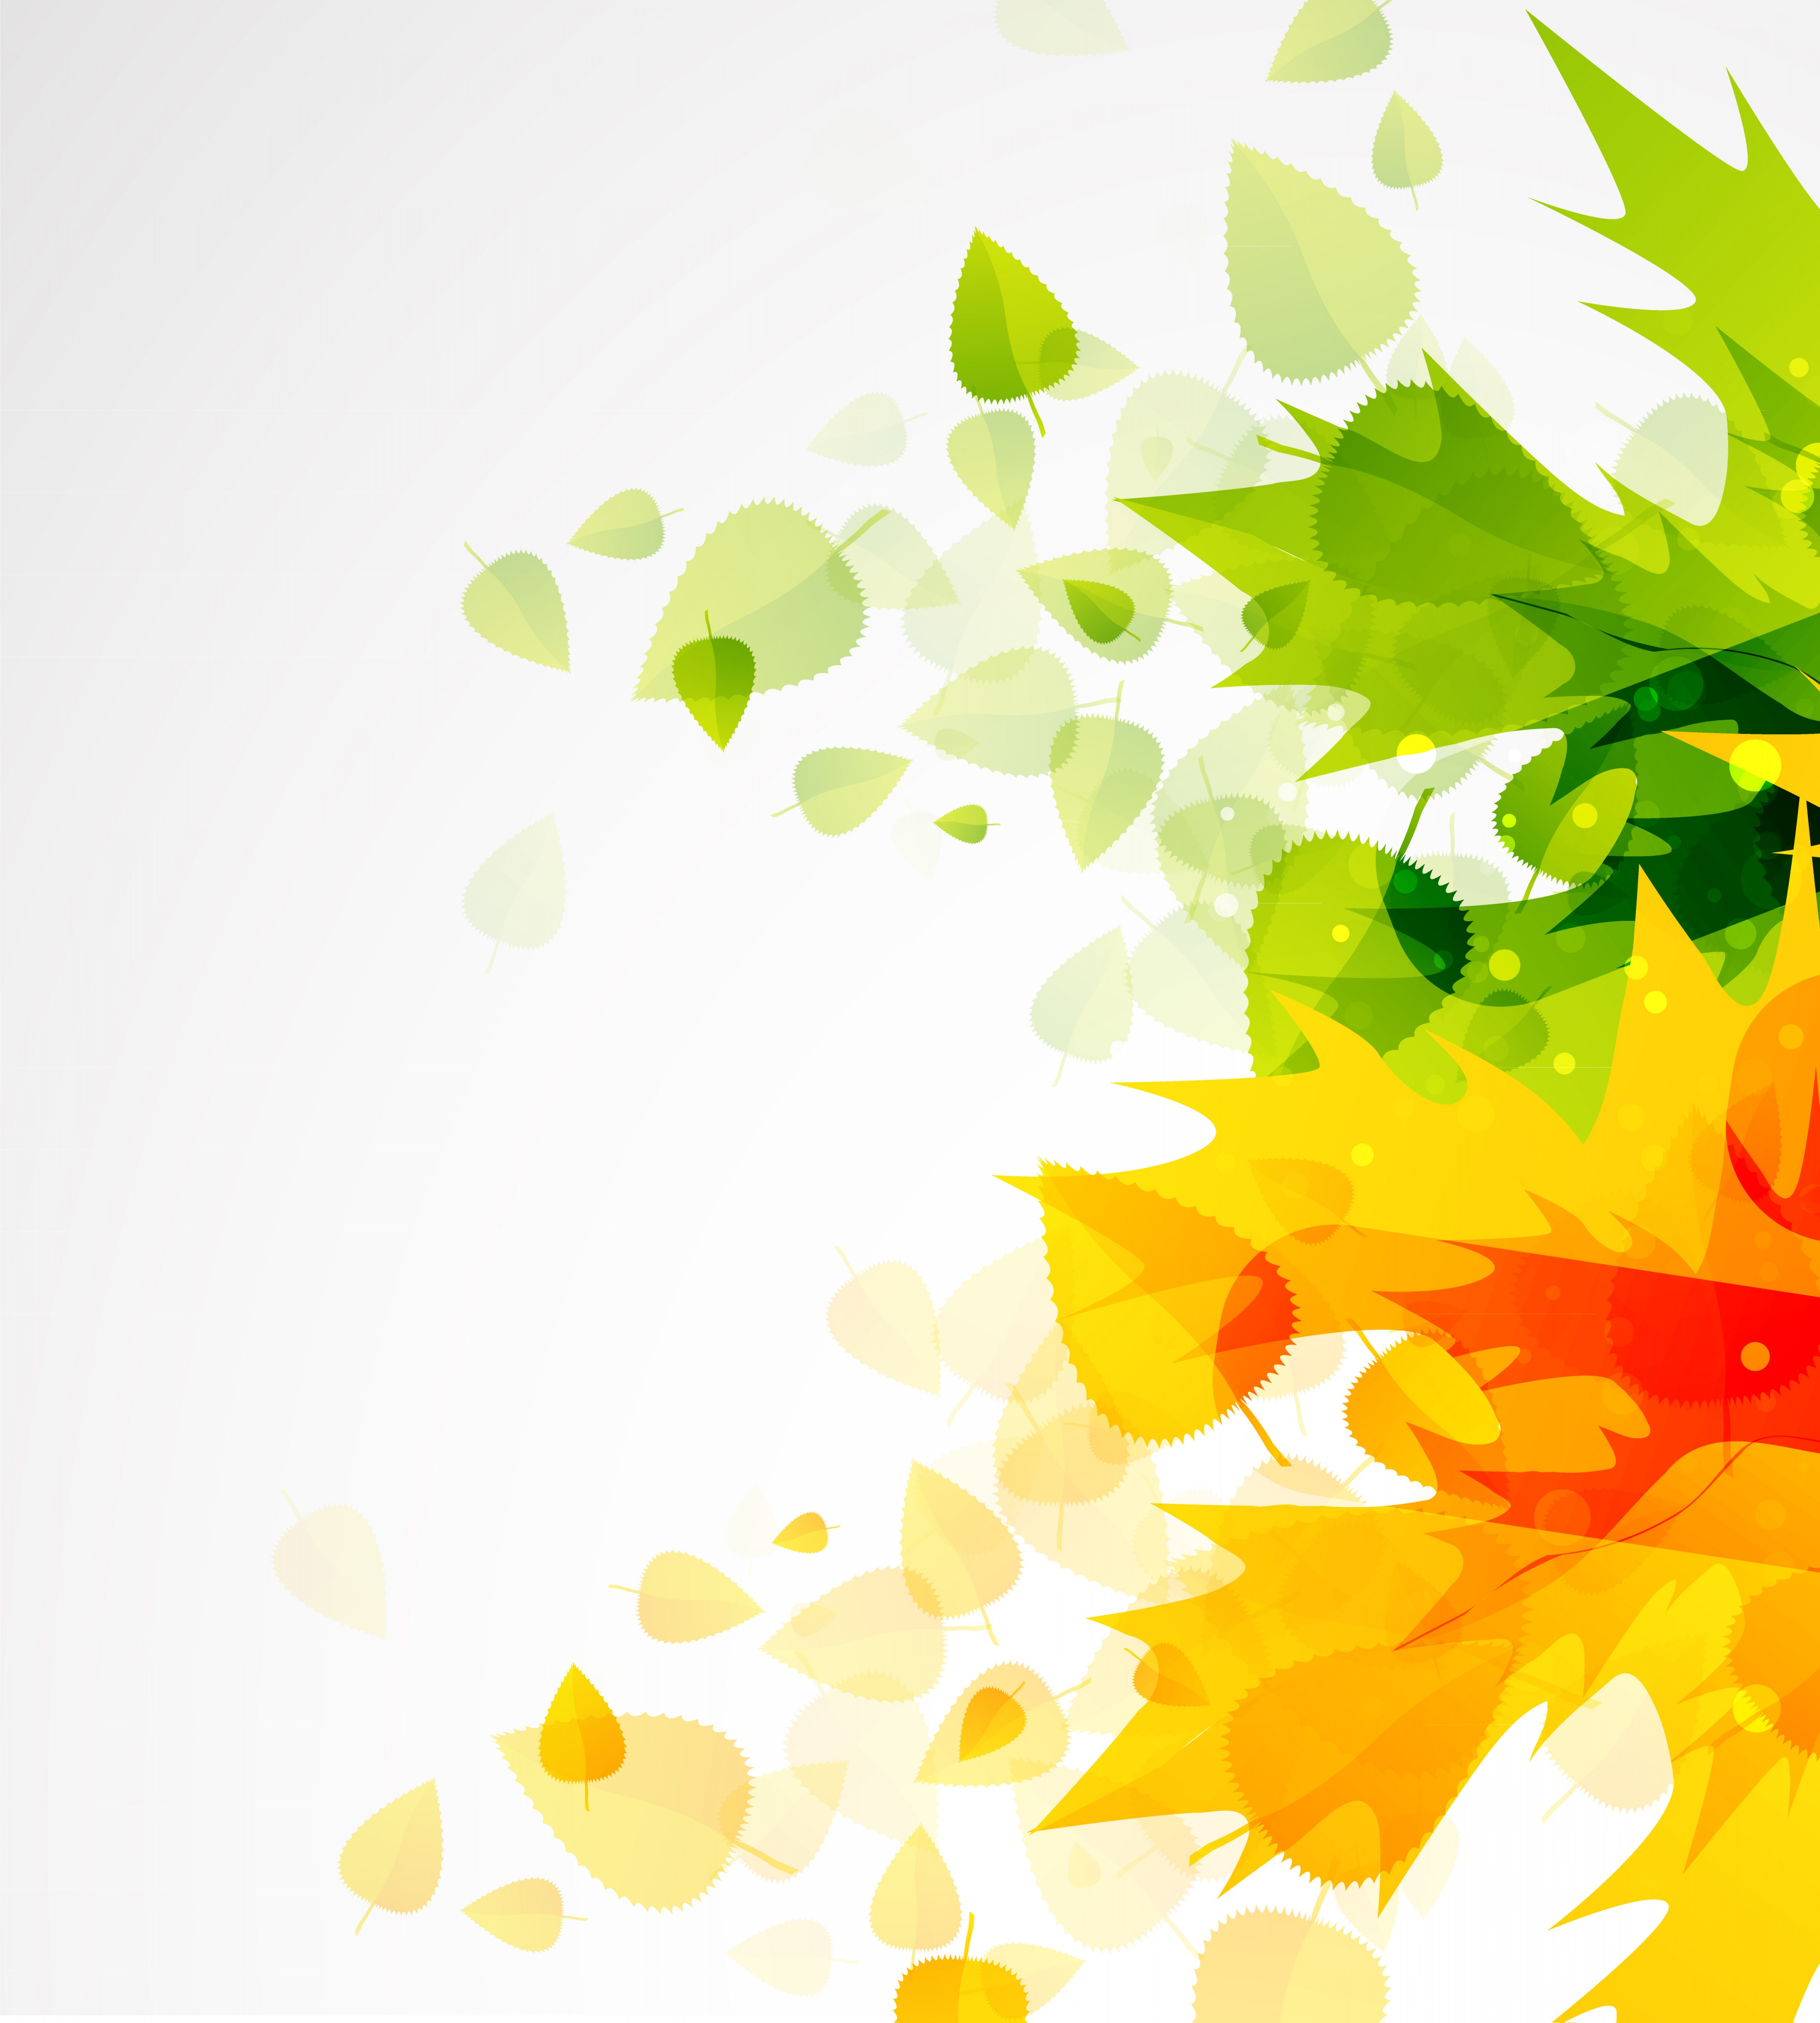 Leaf Background Vector: Beautiful Autumn Leaf Background Vector